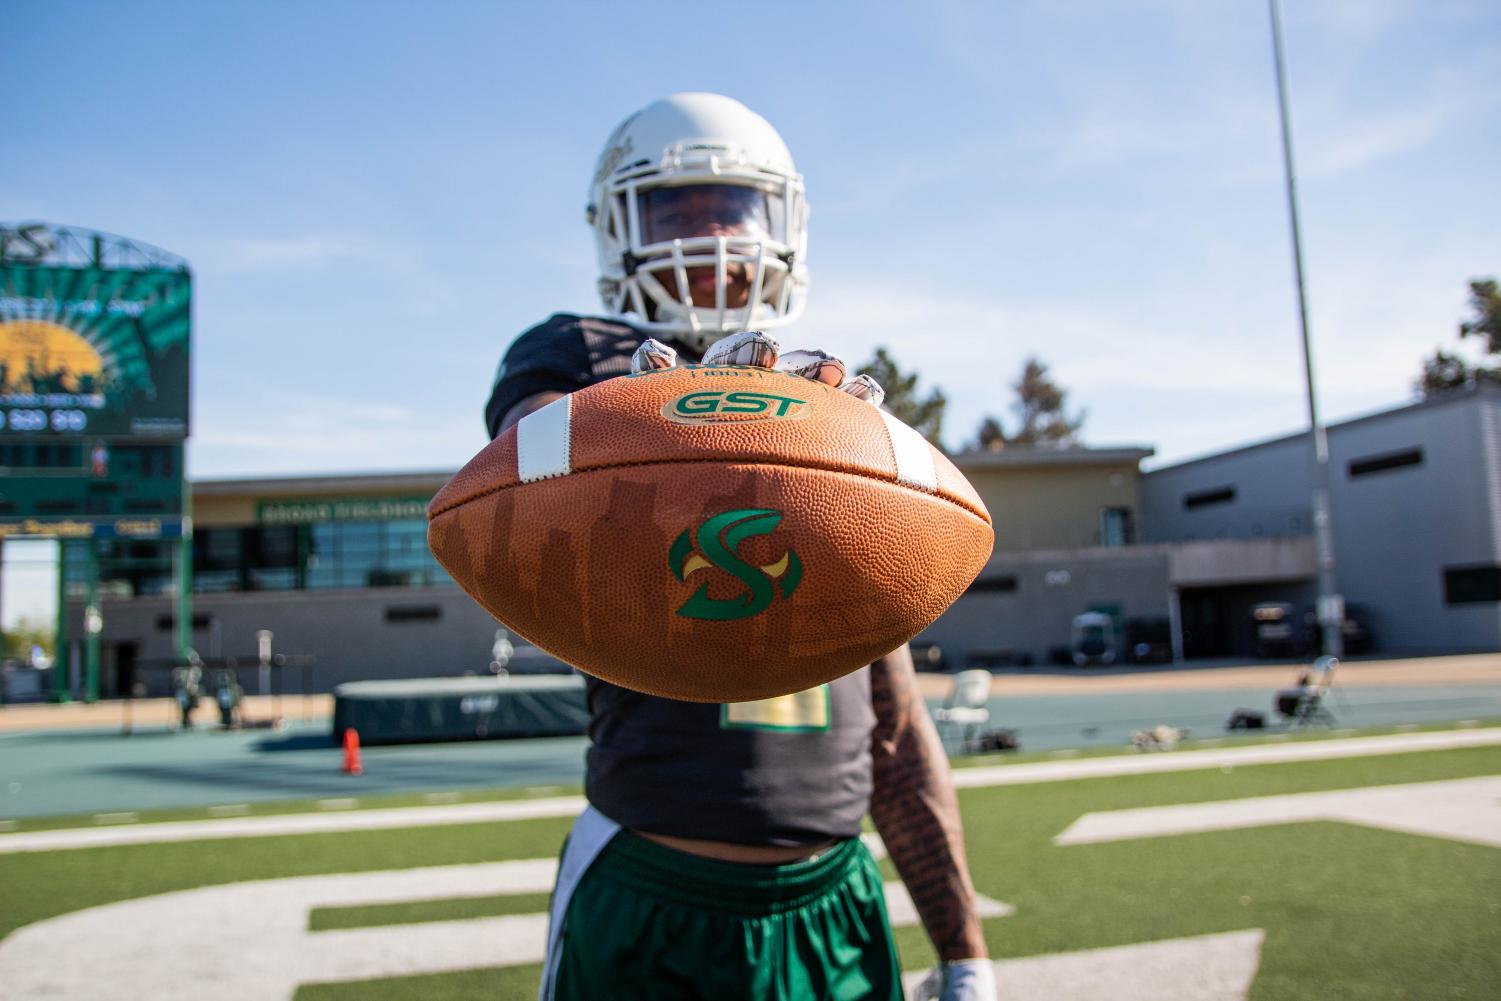 Sac+State+senior+safety+Mister+Harriel+poses+with+a+football+April+18+at+Hornet+Stadium.+Harriel+is+hopeful+to+be+selected+in+the+2019+NFL+Draft.+